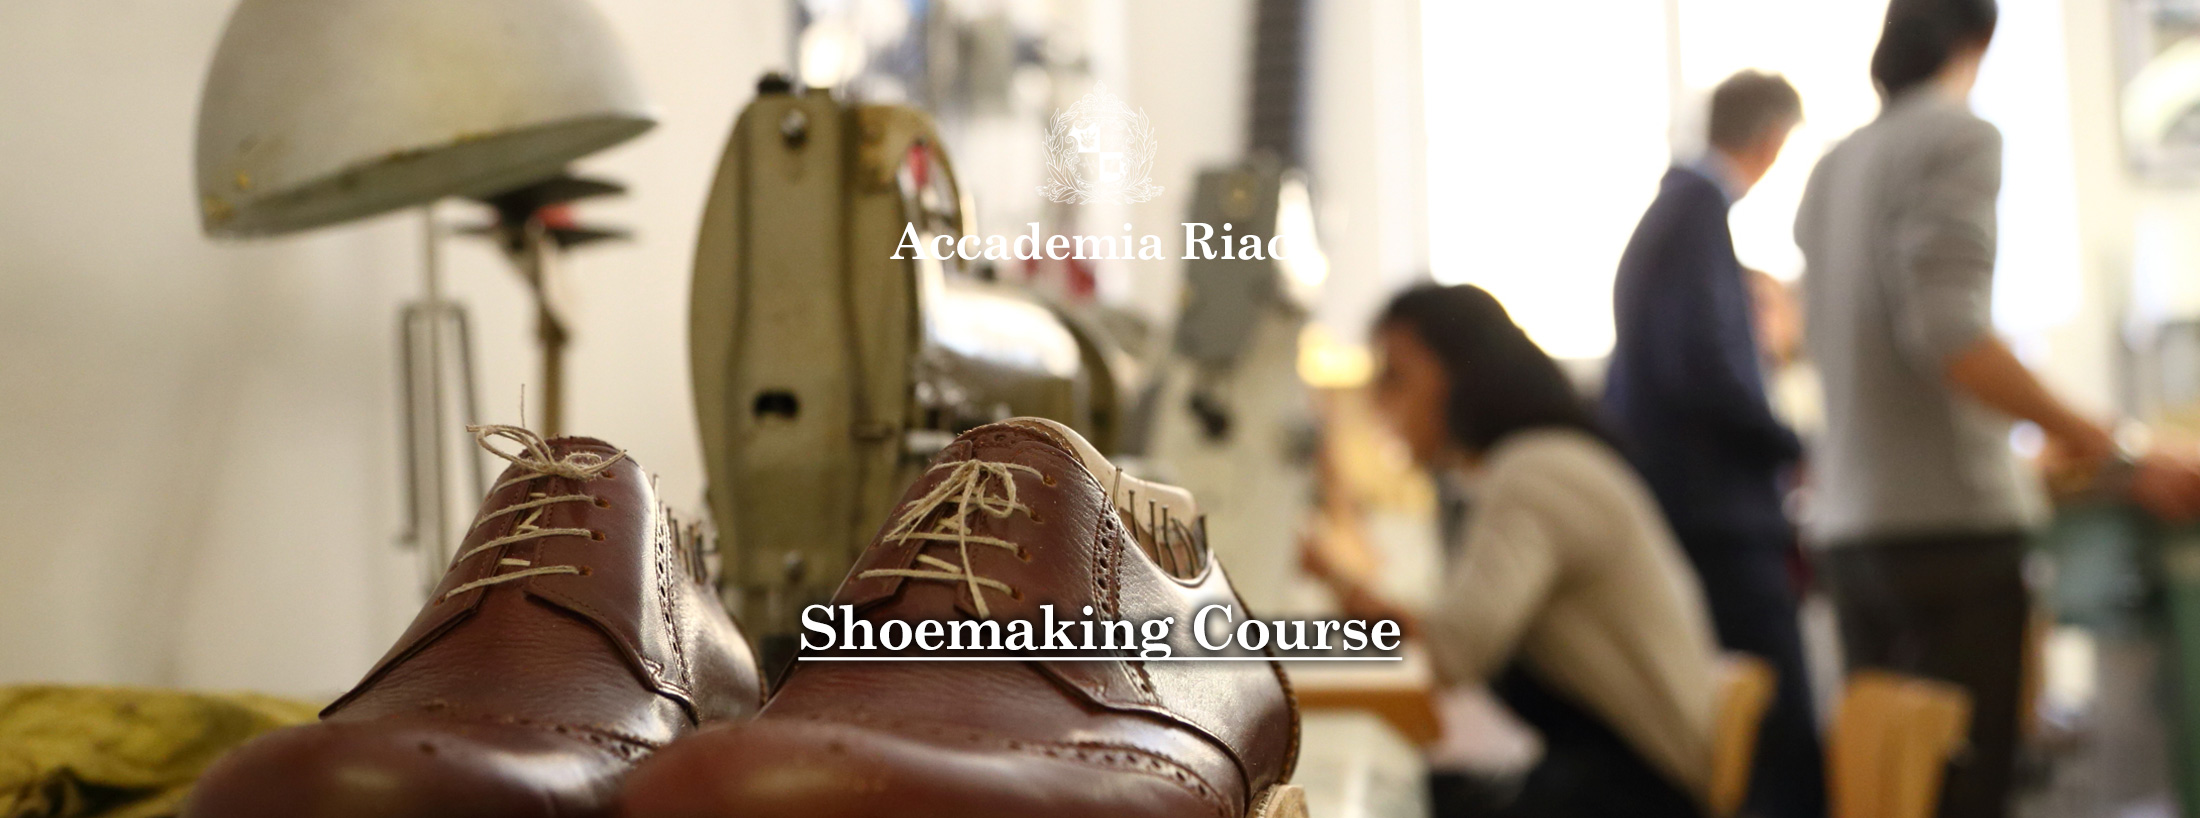 Shoemaking Course